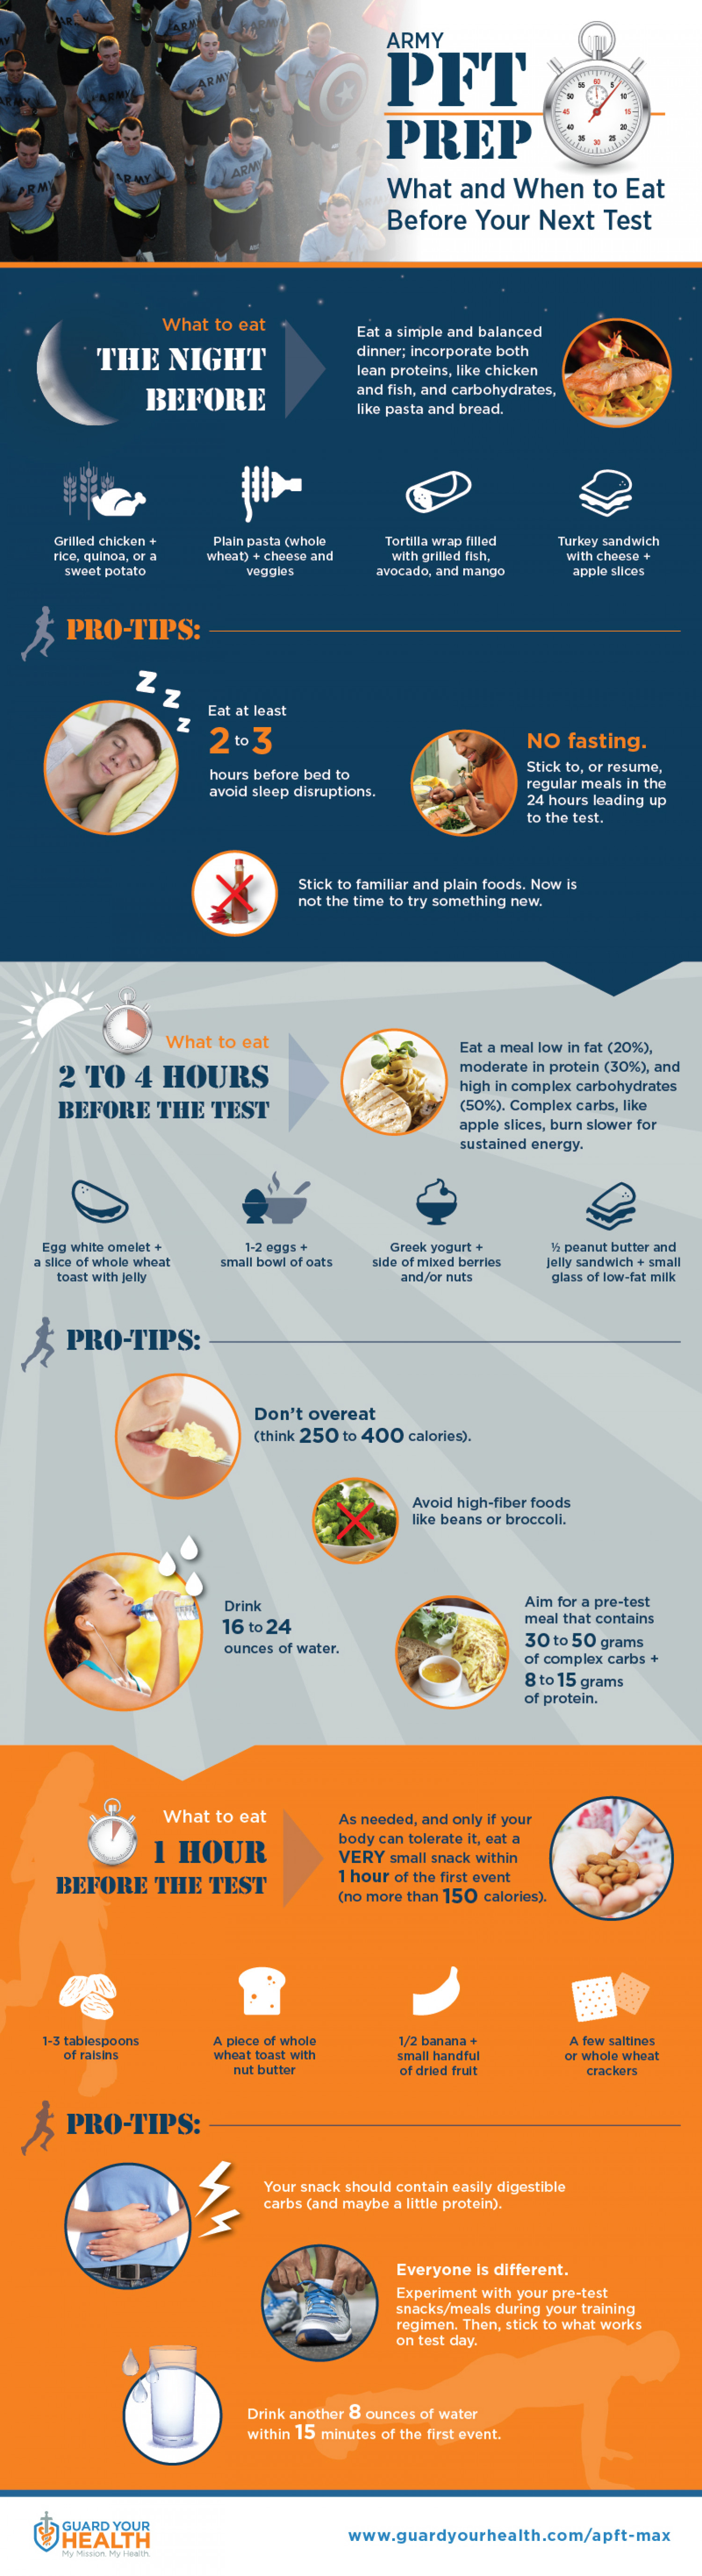 Army PFT Prep: What and When to Eat Before Your Next Test Infographic